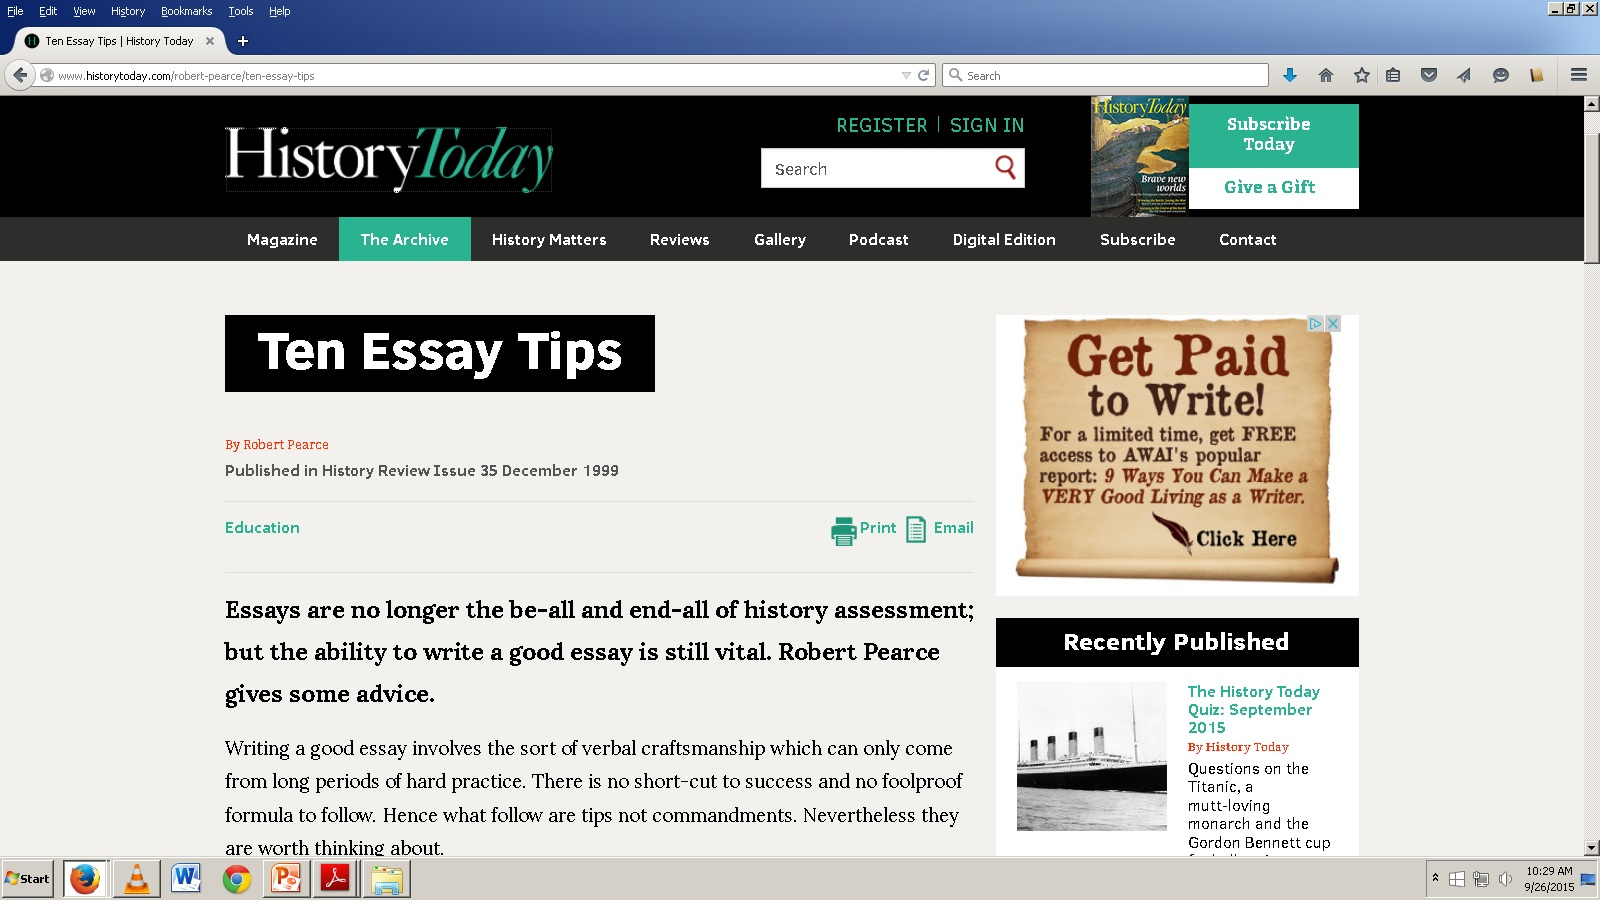 013 Essay Example Top Writing Service Websites Pay For Ten Org Stupendous Reviews Essay.net Full